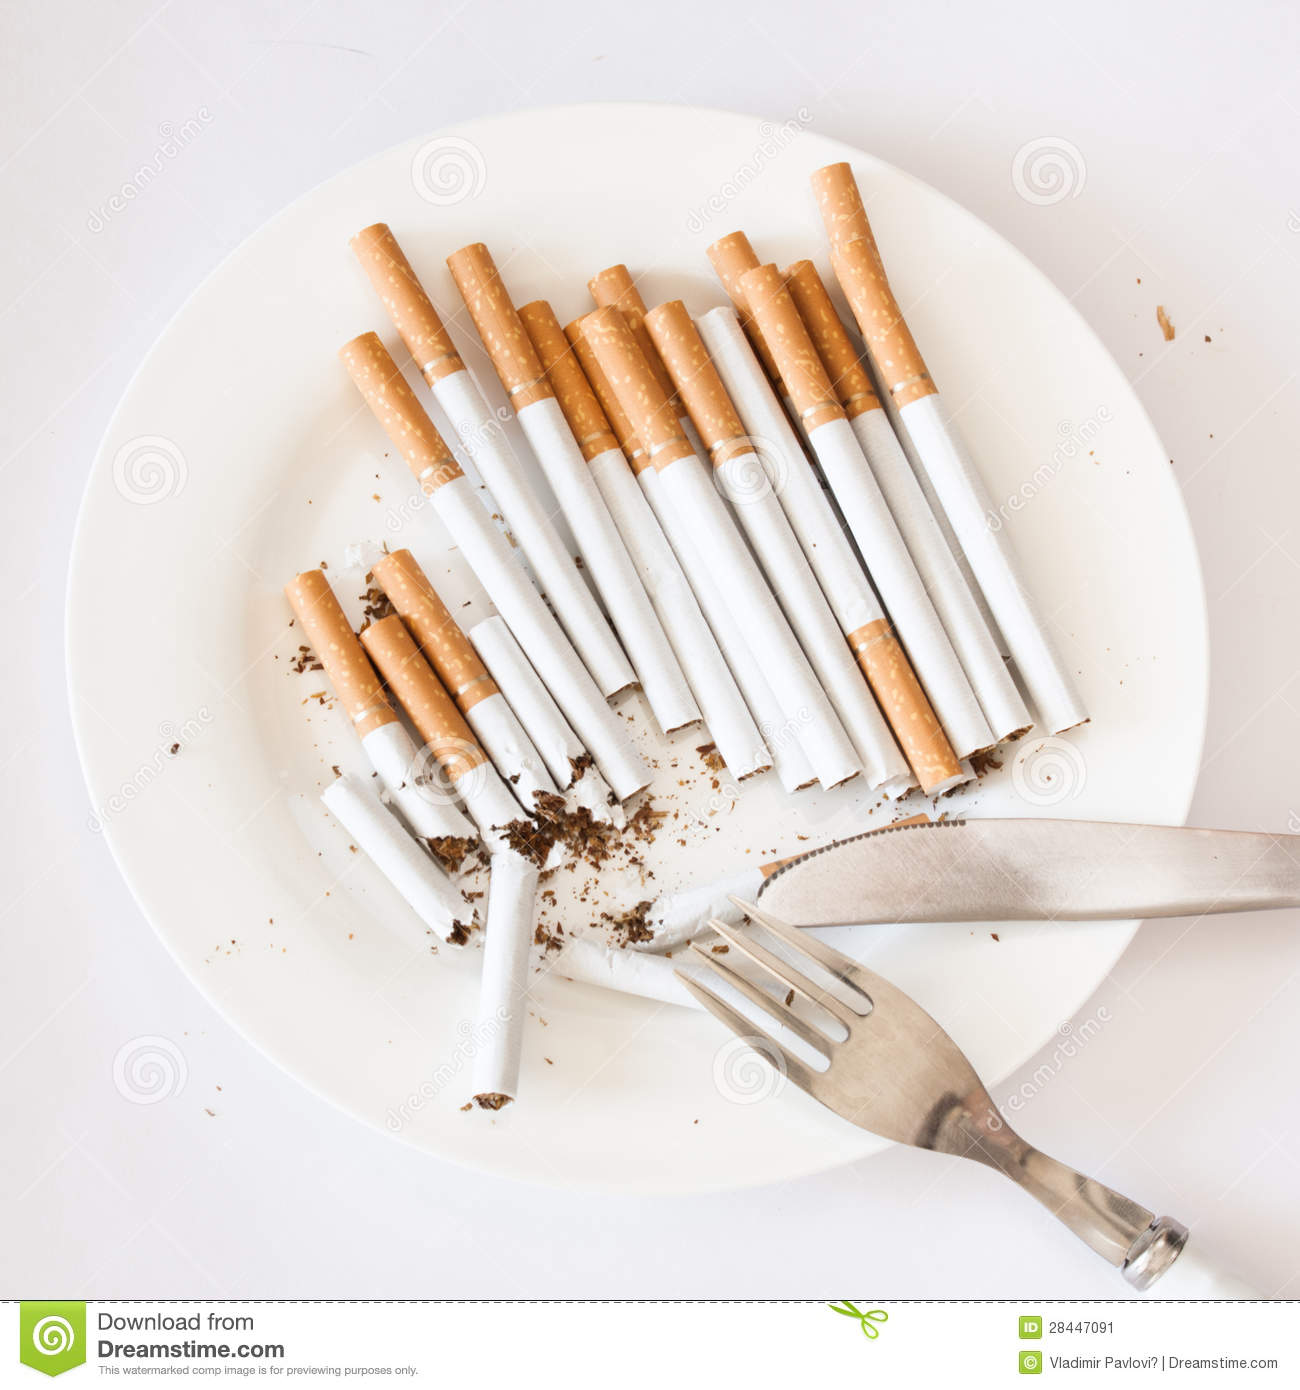 biopsychosocial of smoking Smoking kills, so why people  i will look at three types of people by using the biopsychosocial model as a help to understand them as a whole.